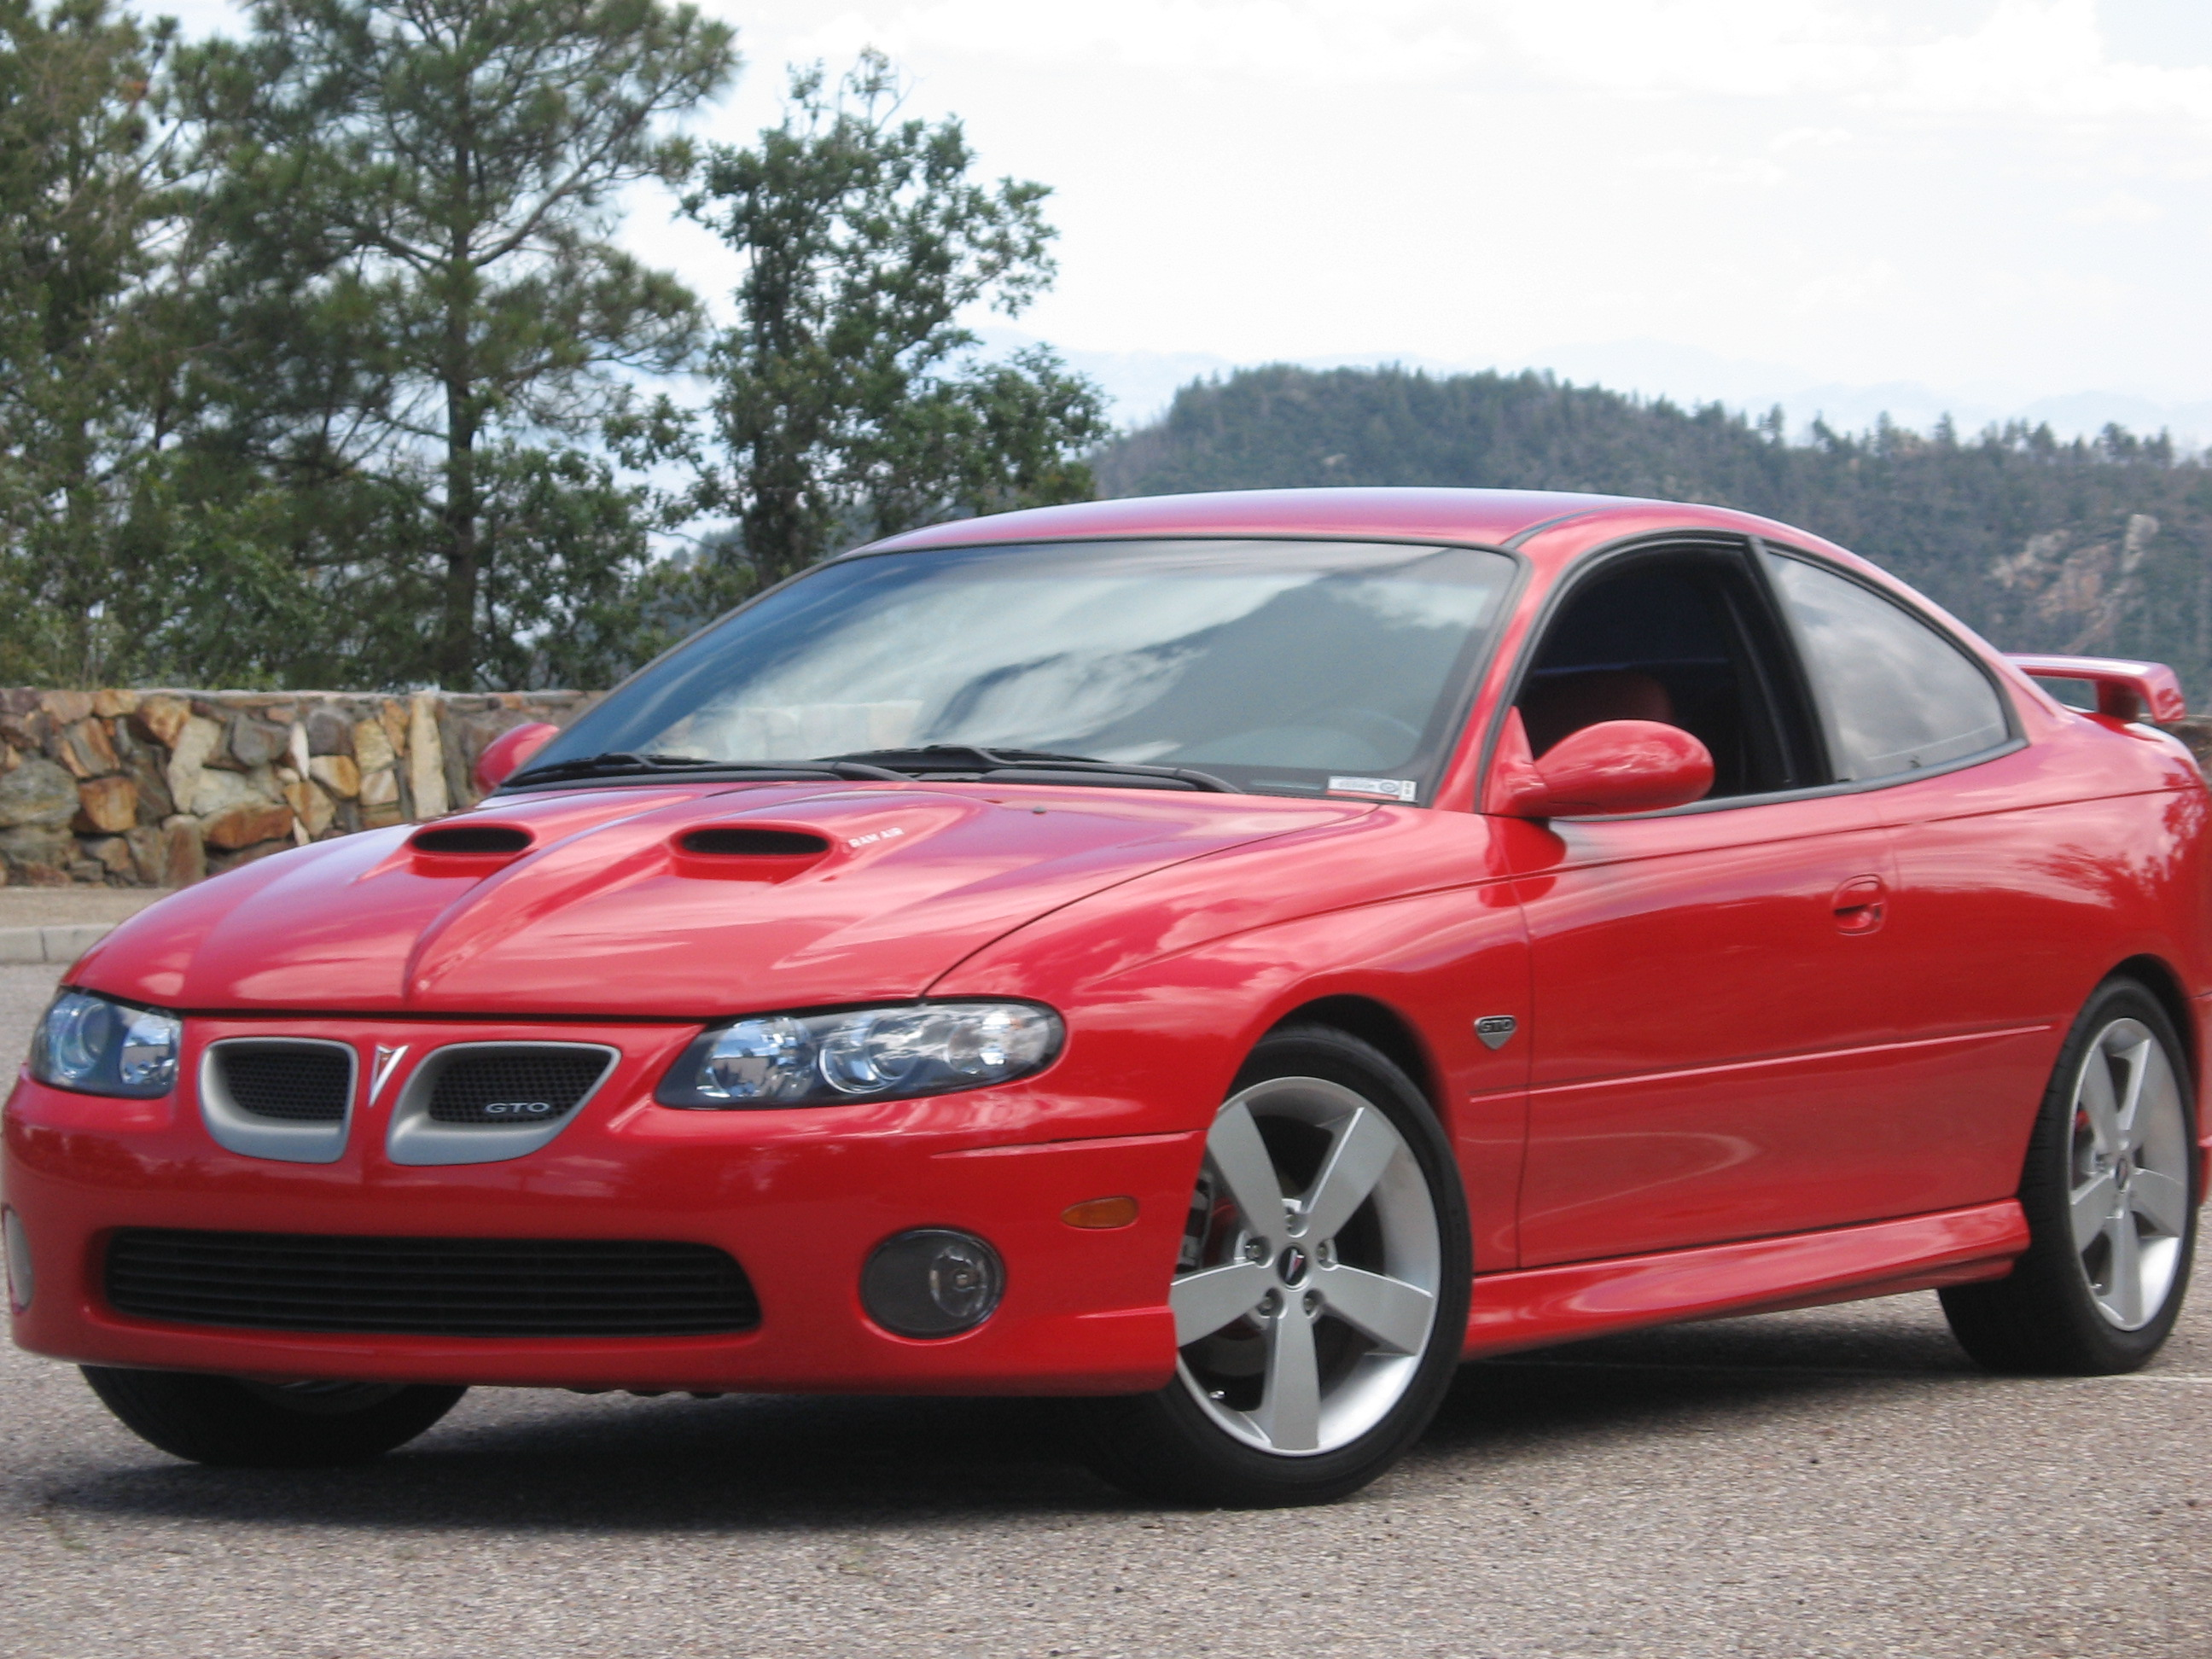 PONTIAC GTO - Review and photos